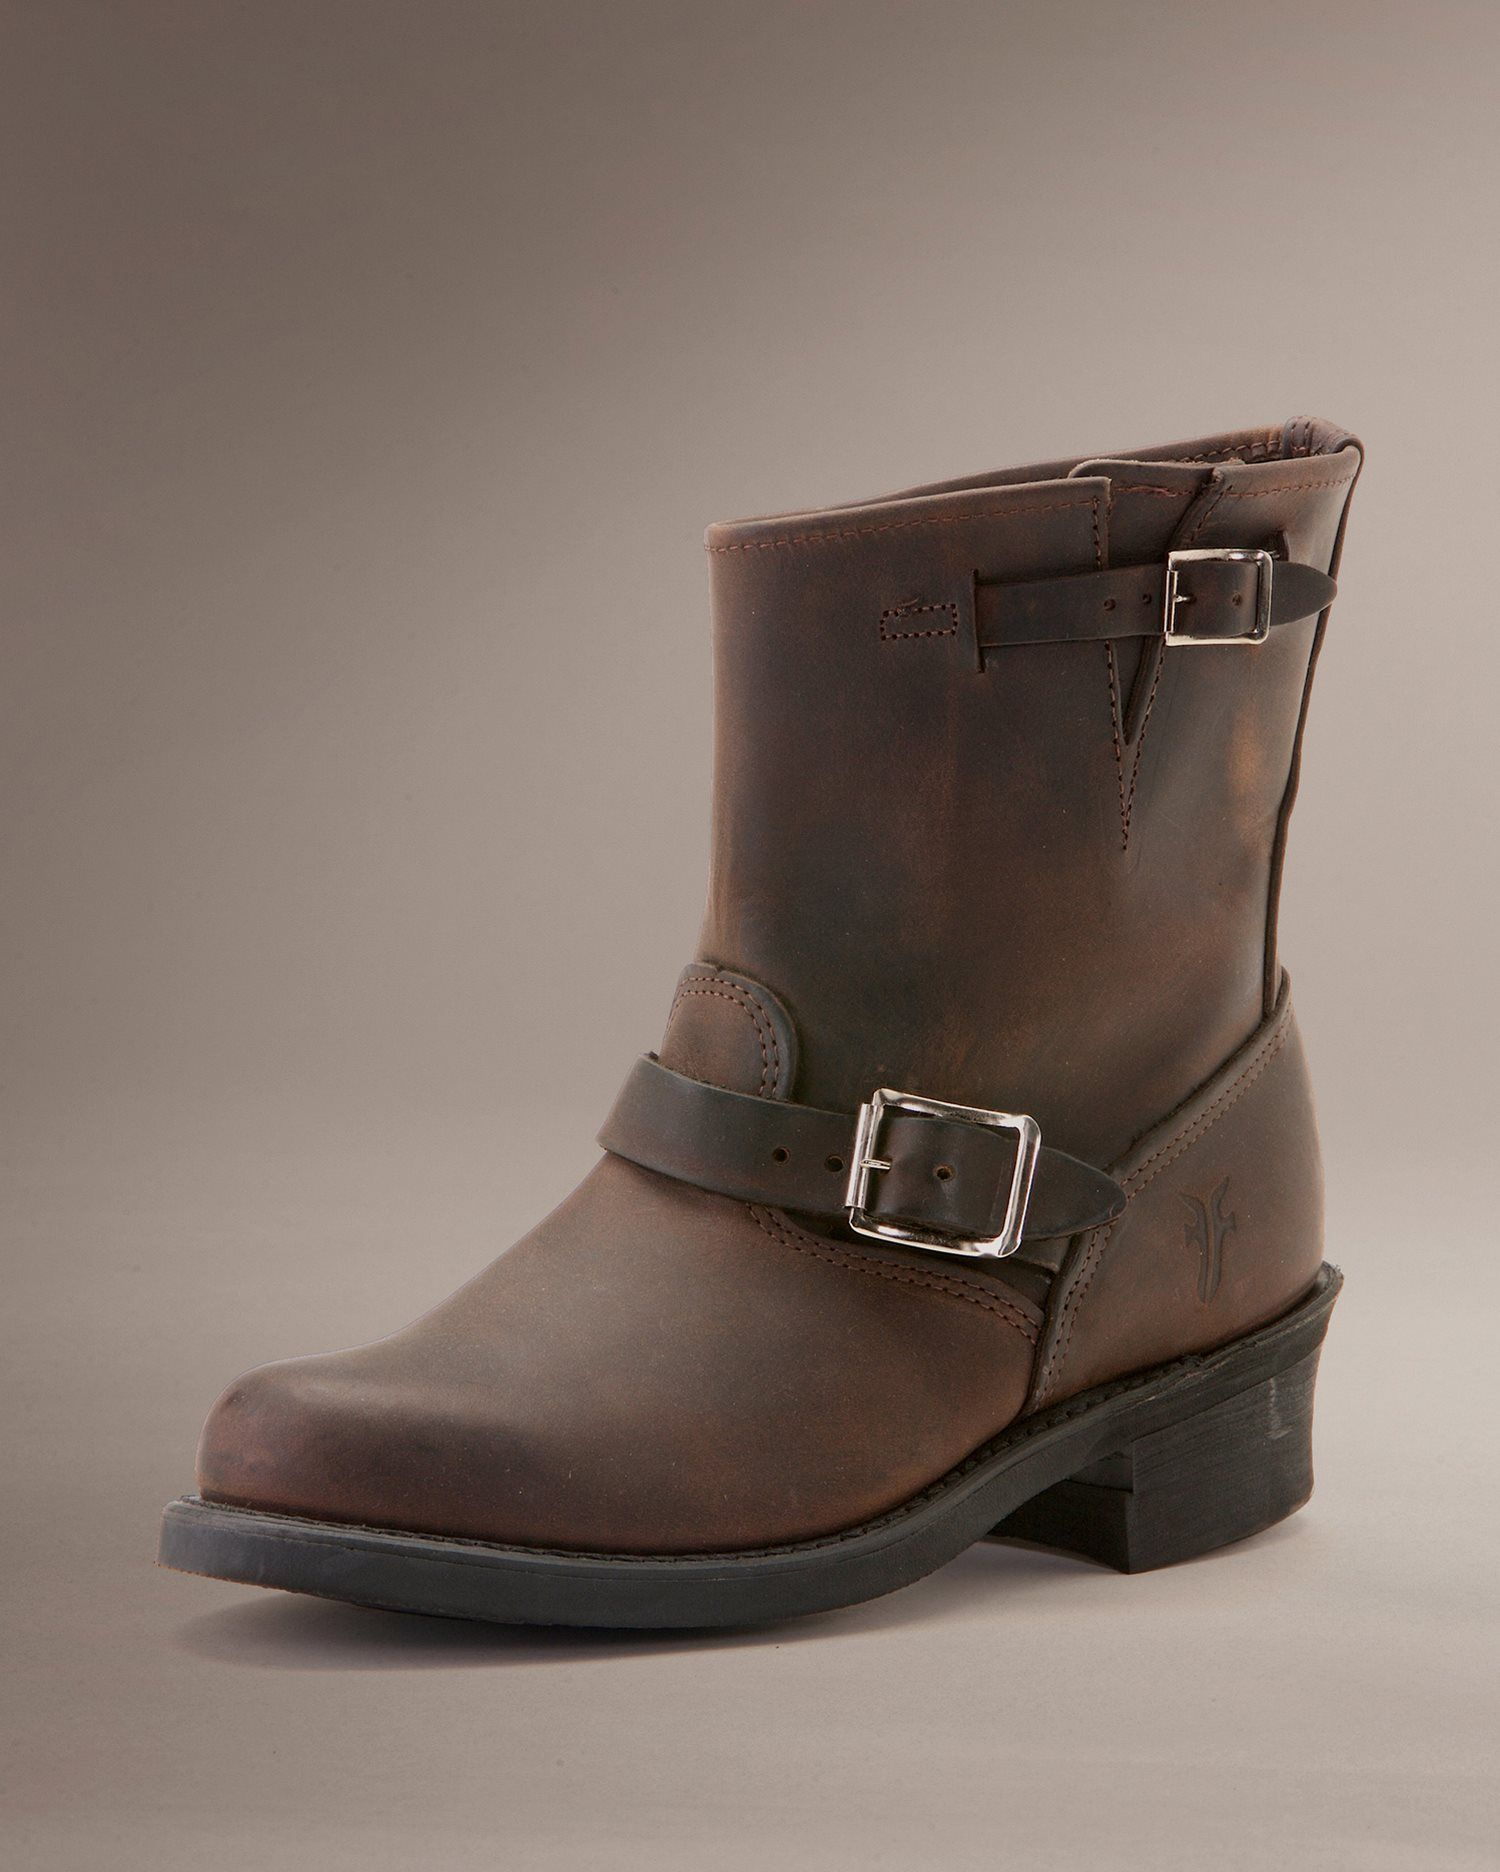 Engineer 8r - Women_Boots_Work - The Frye Company